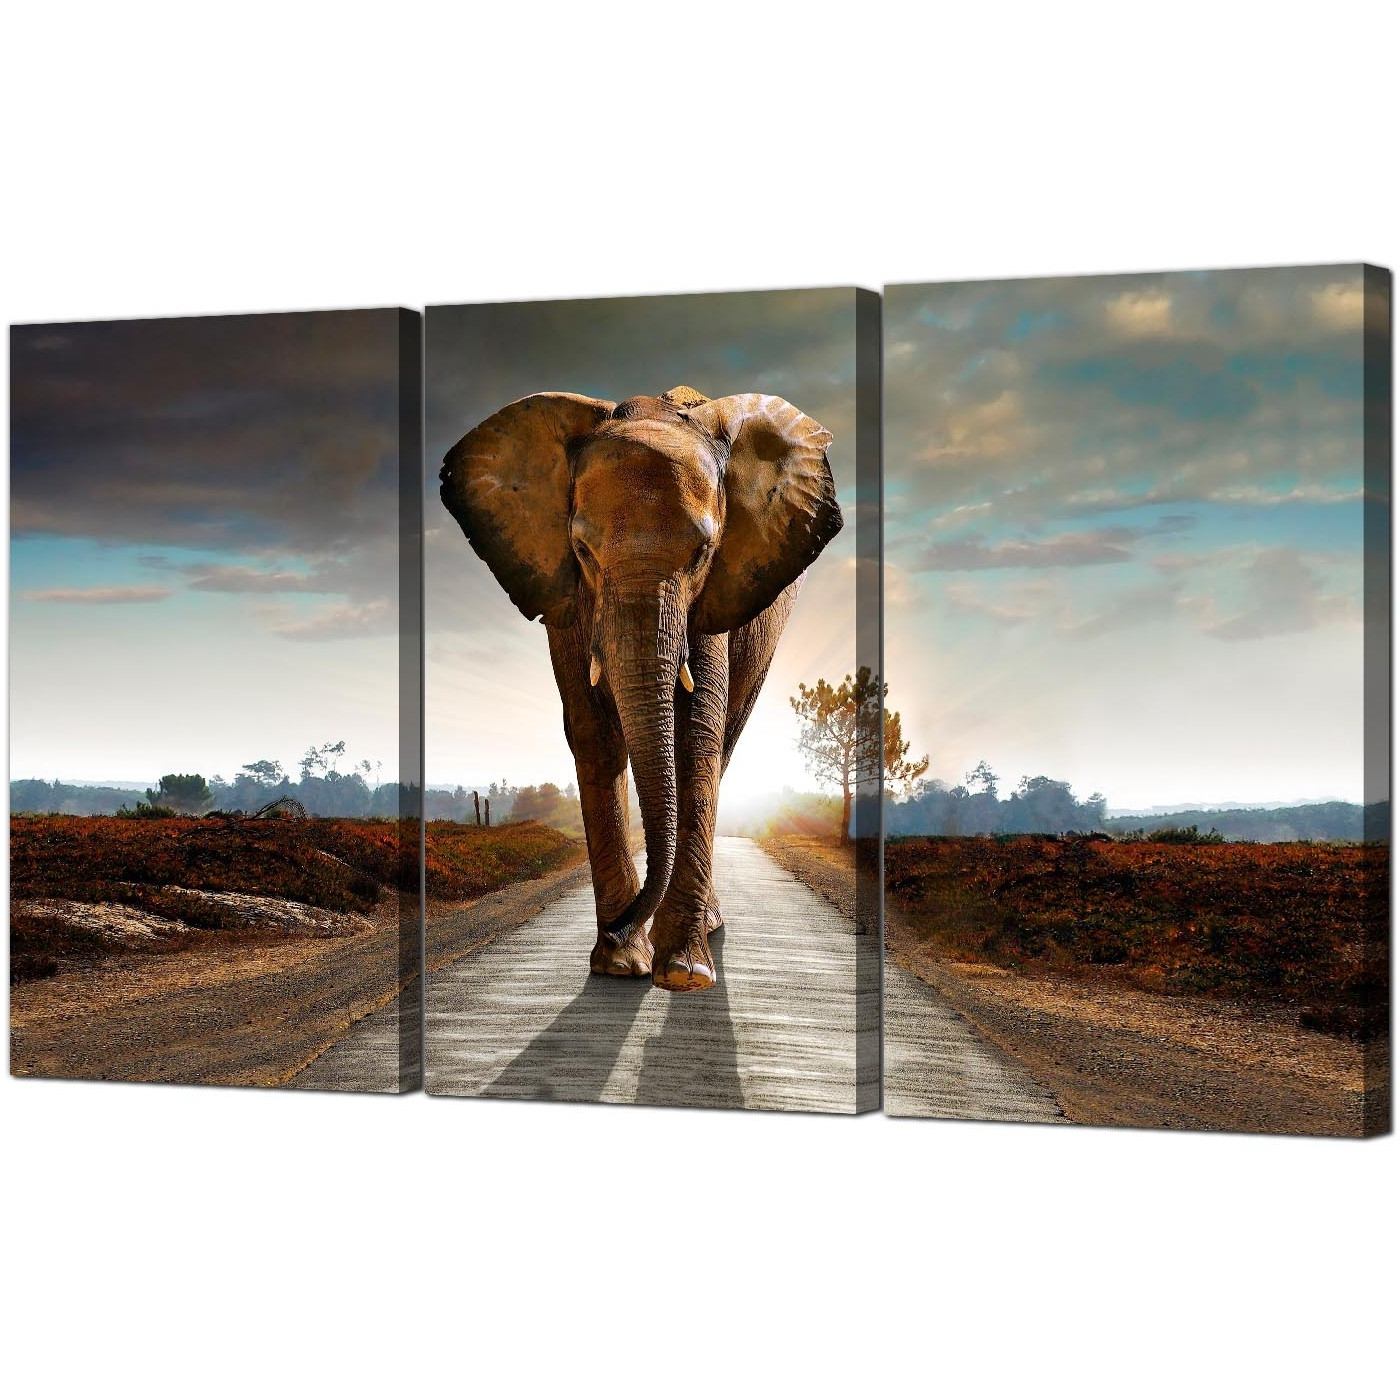 Widely Used Large African Elephant Canvas Prints 3 Part For Your Hallway With 3 Piece Canvas Wall Art (View 15 of 15)